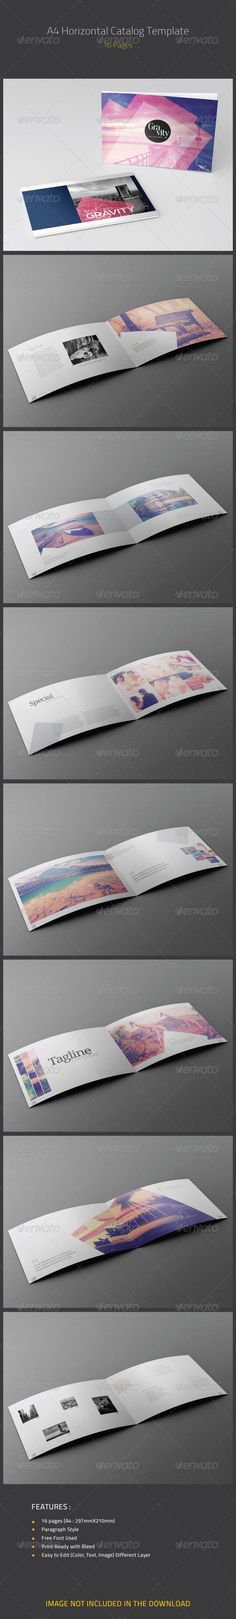 A4 Horizontal Catalog Template - Catalogs Brochures